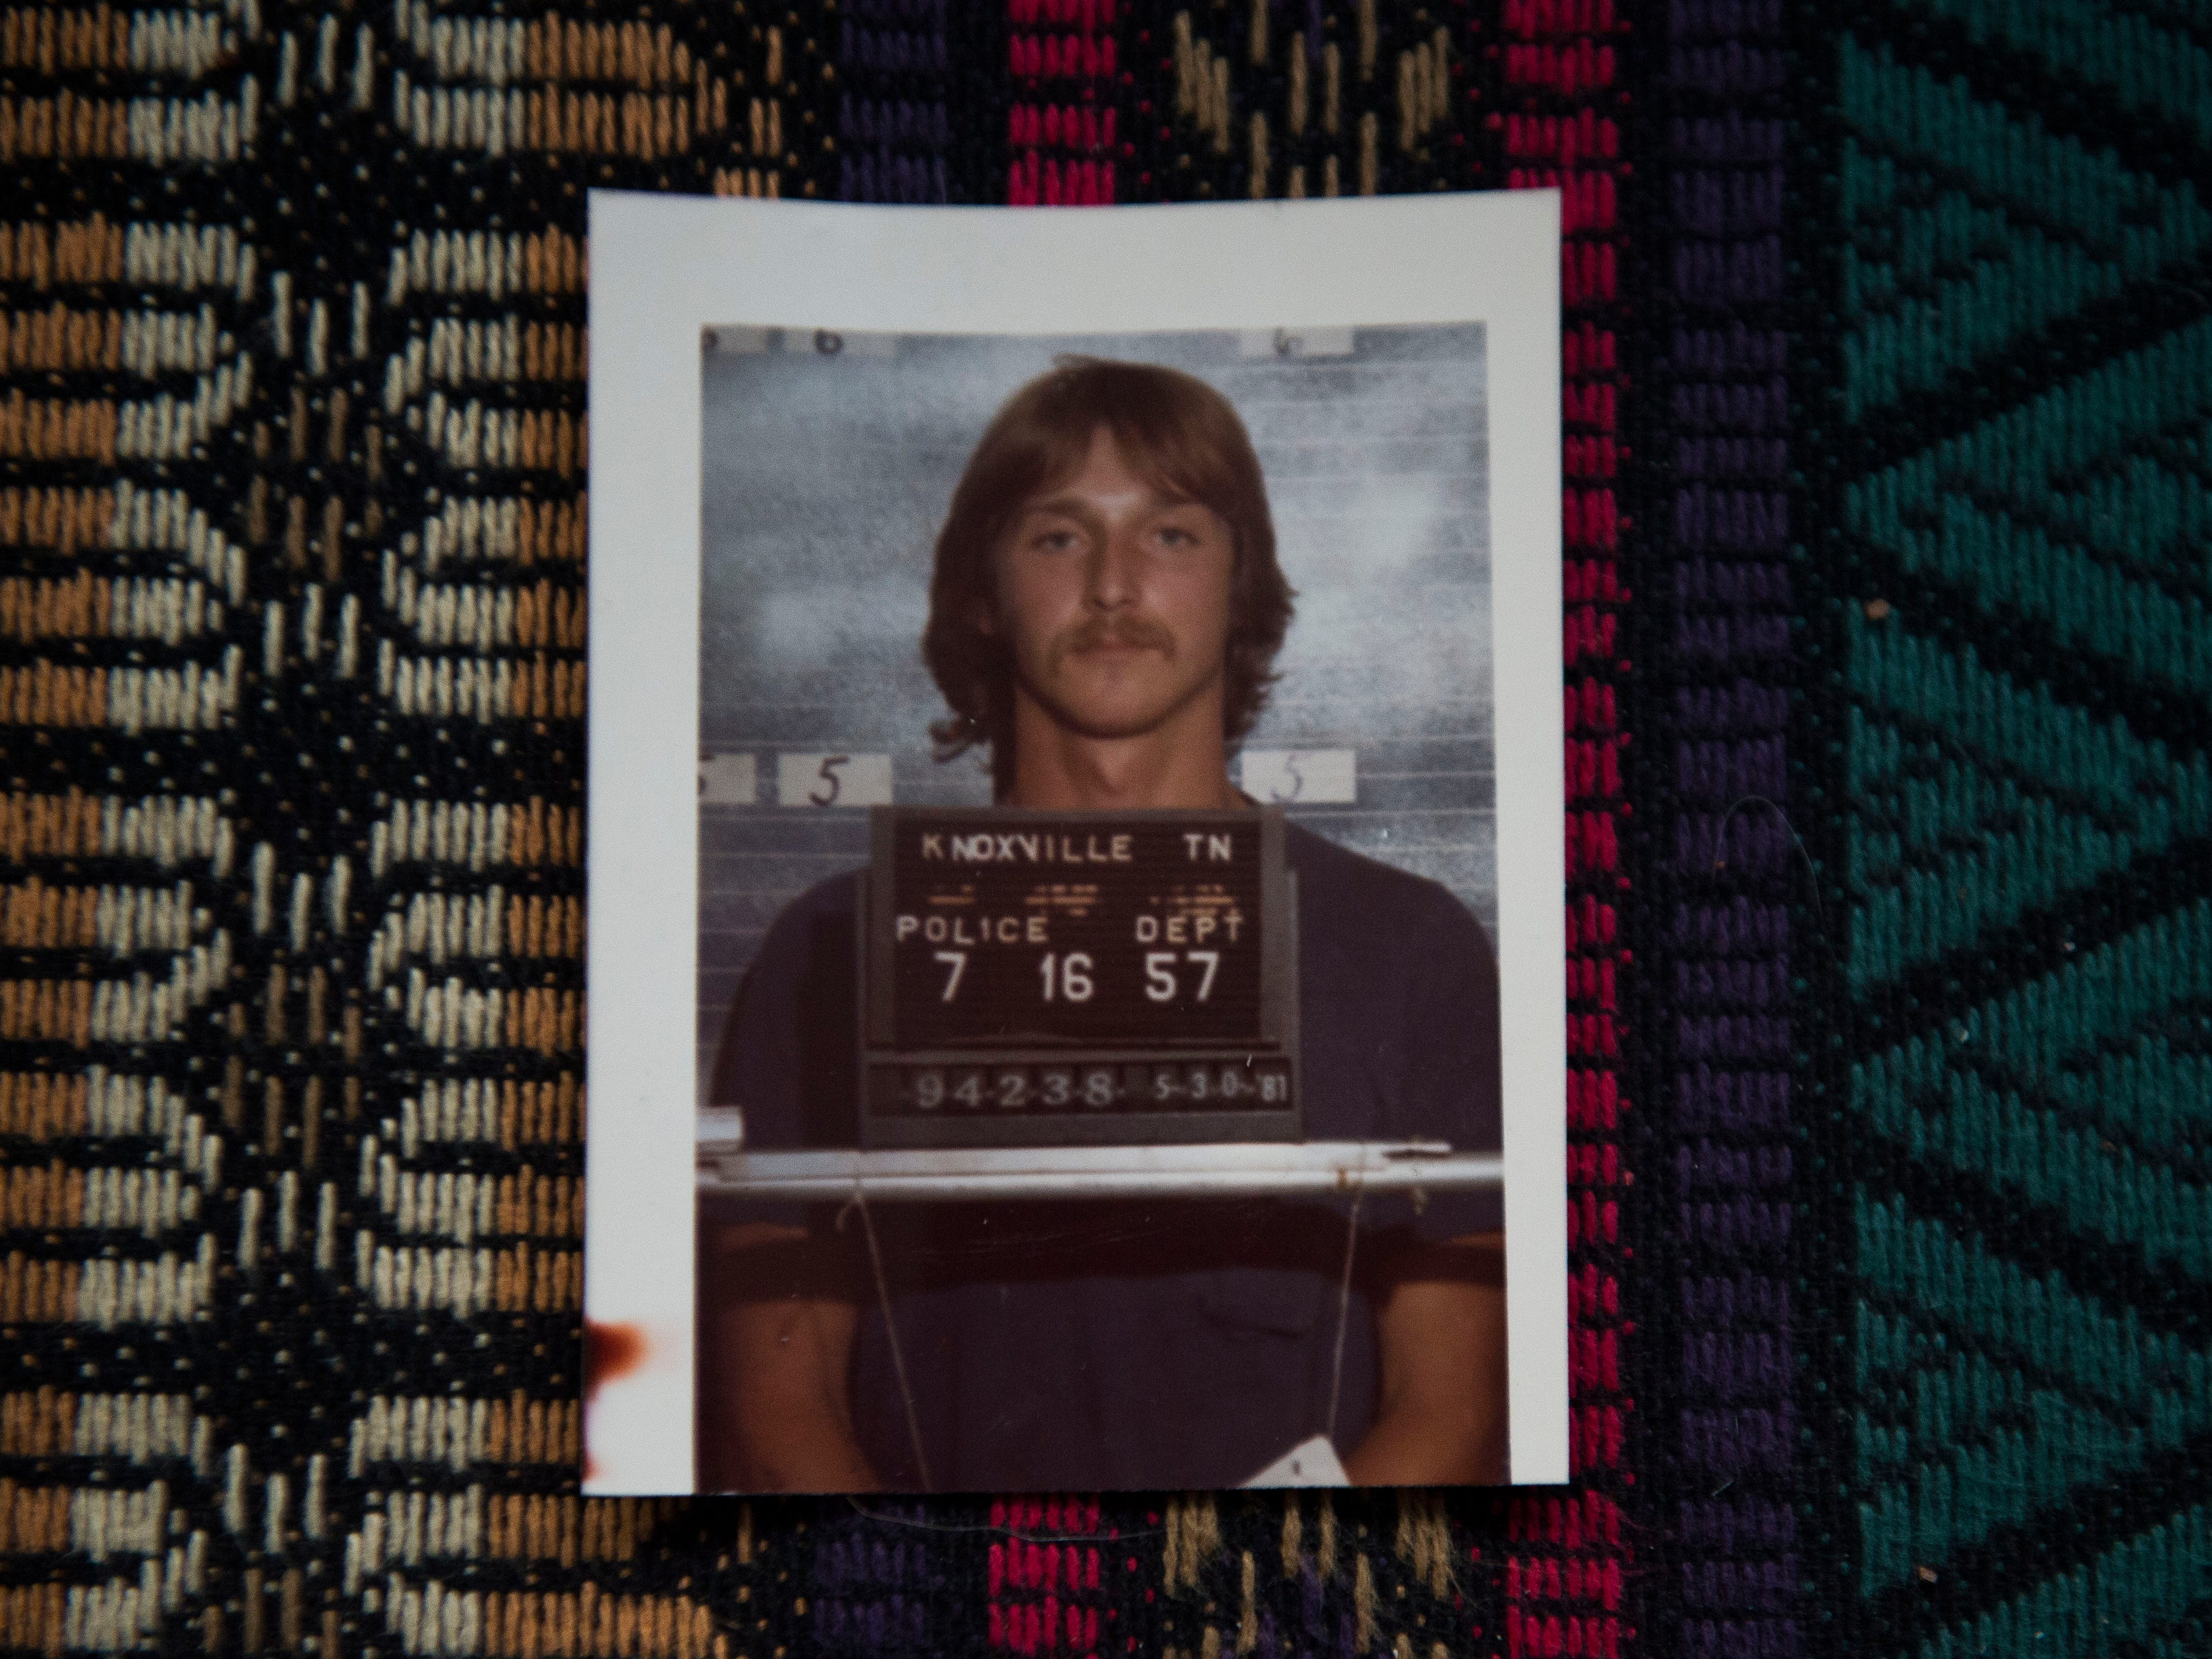 Tennessee execution: What I saw when I watched David Earl Miller die in the electric chair